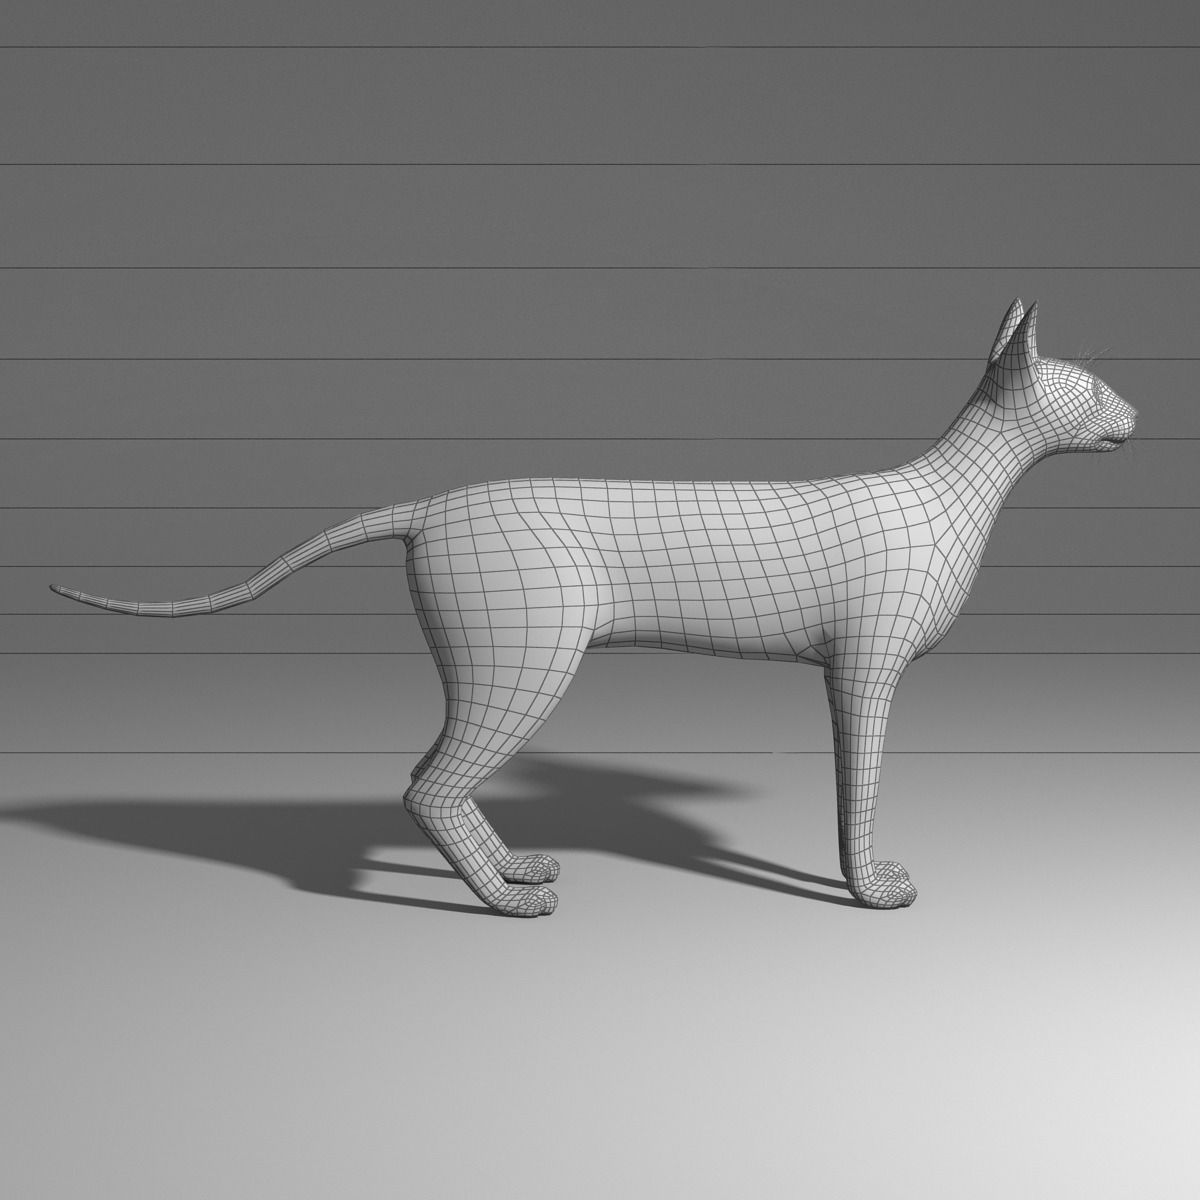 siamese cat 3d model - photo #33